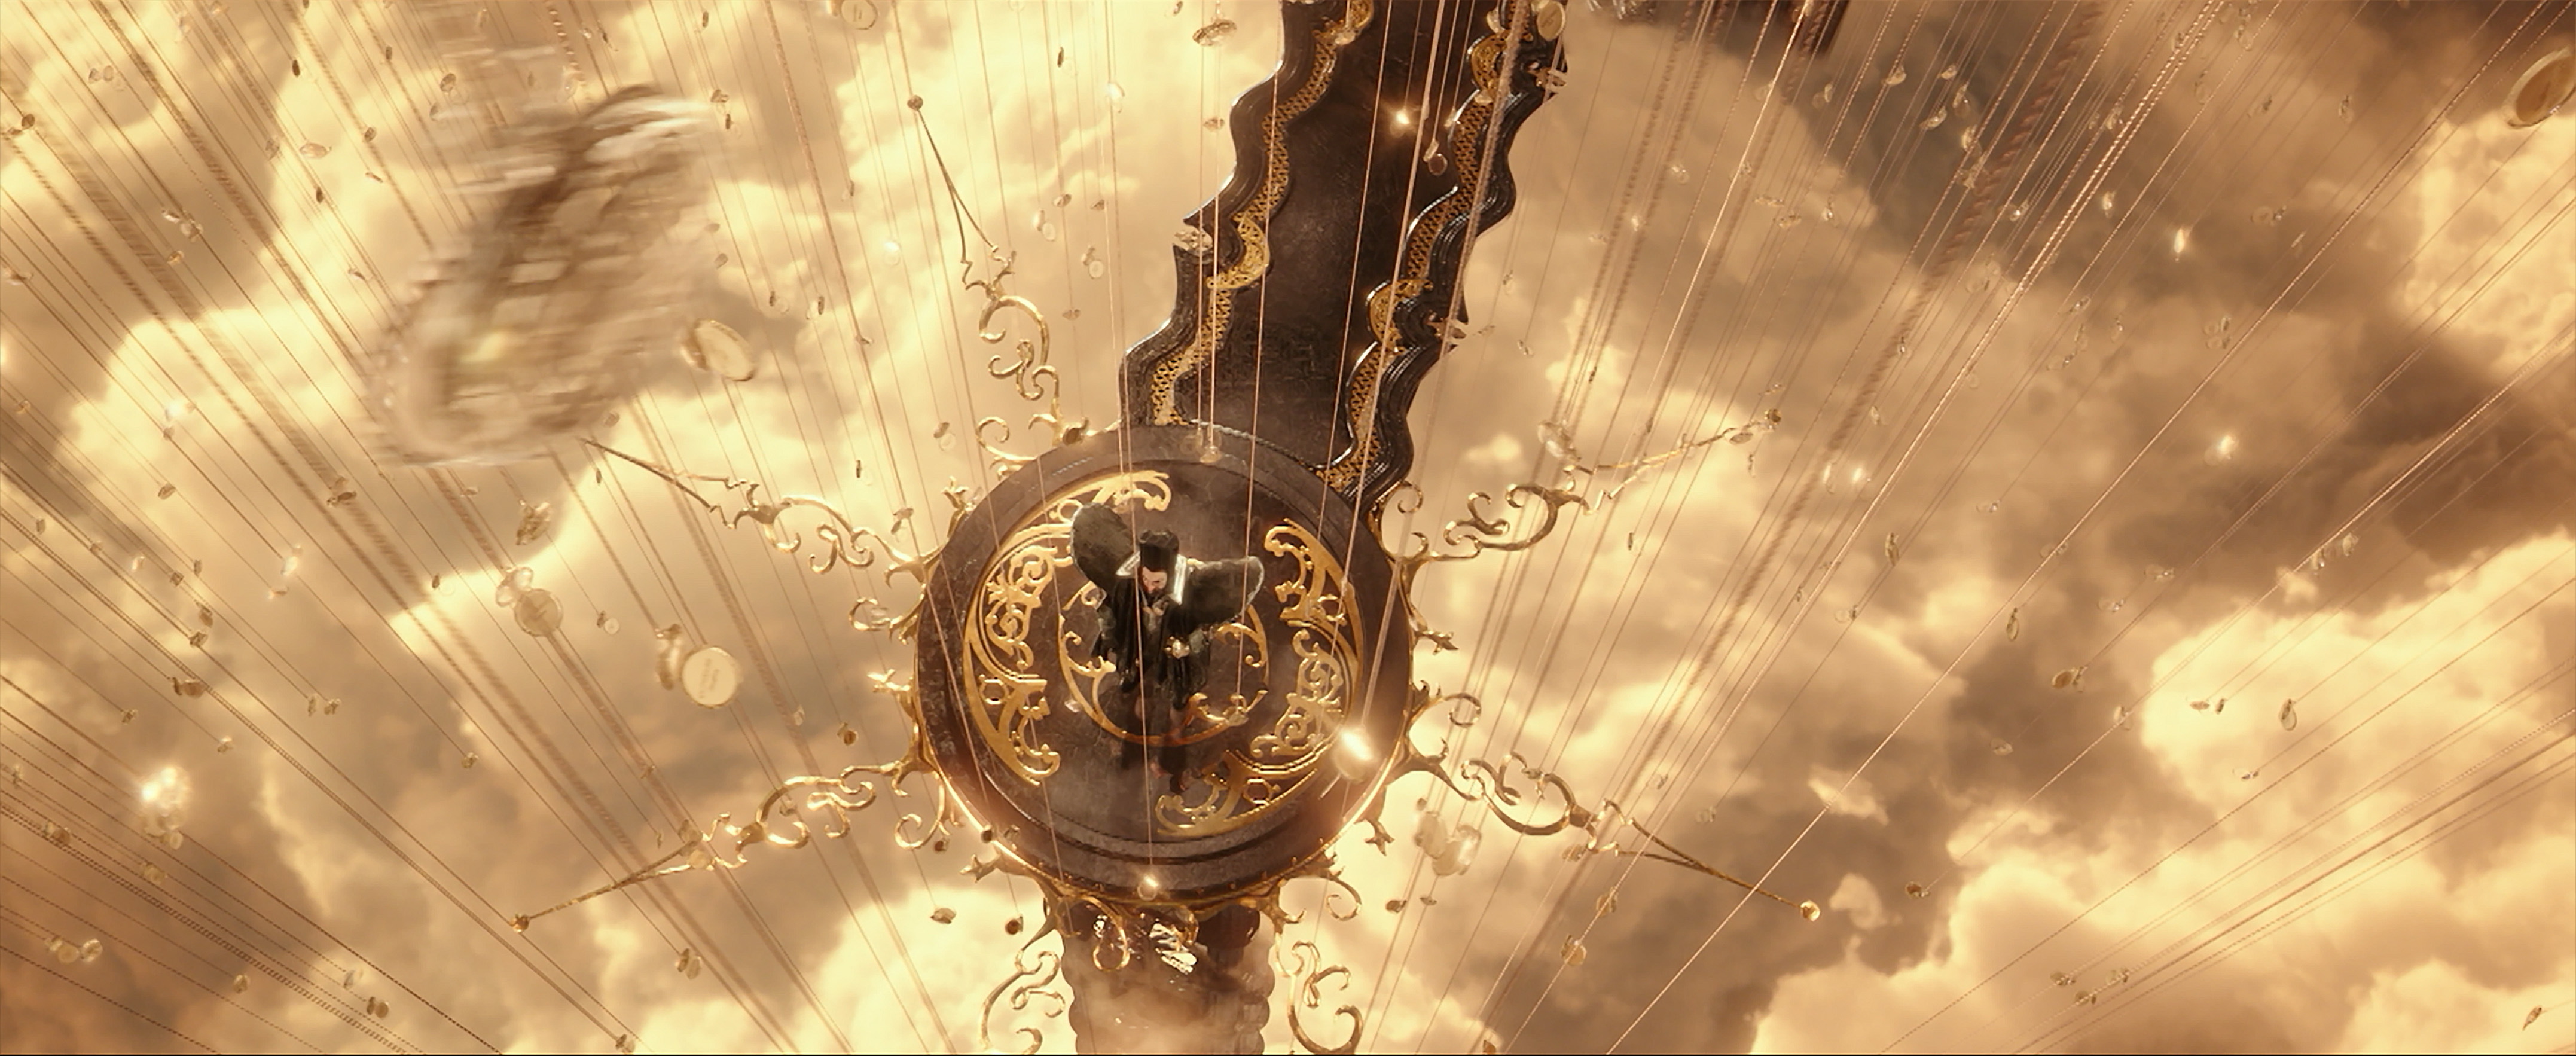 "Résultat de recherche d'images pour ""alice through the looking glass clock"""